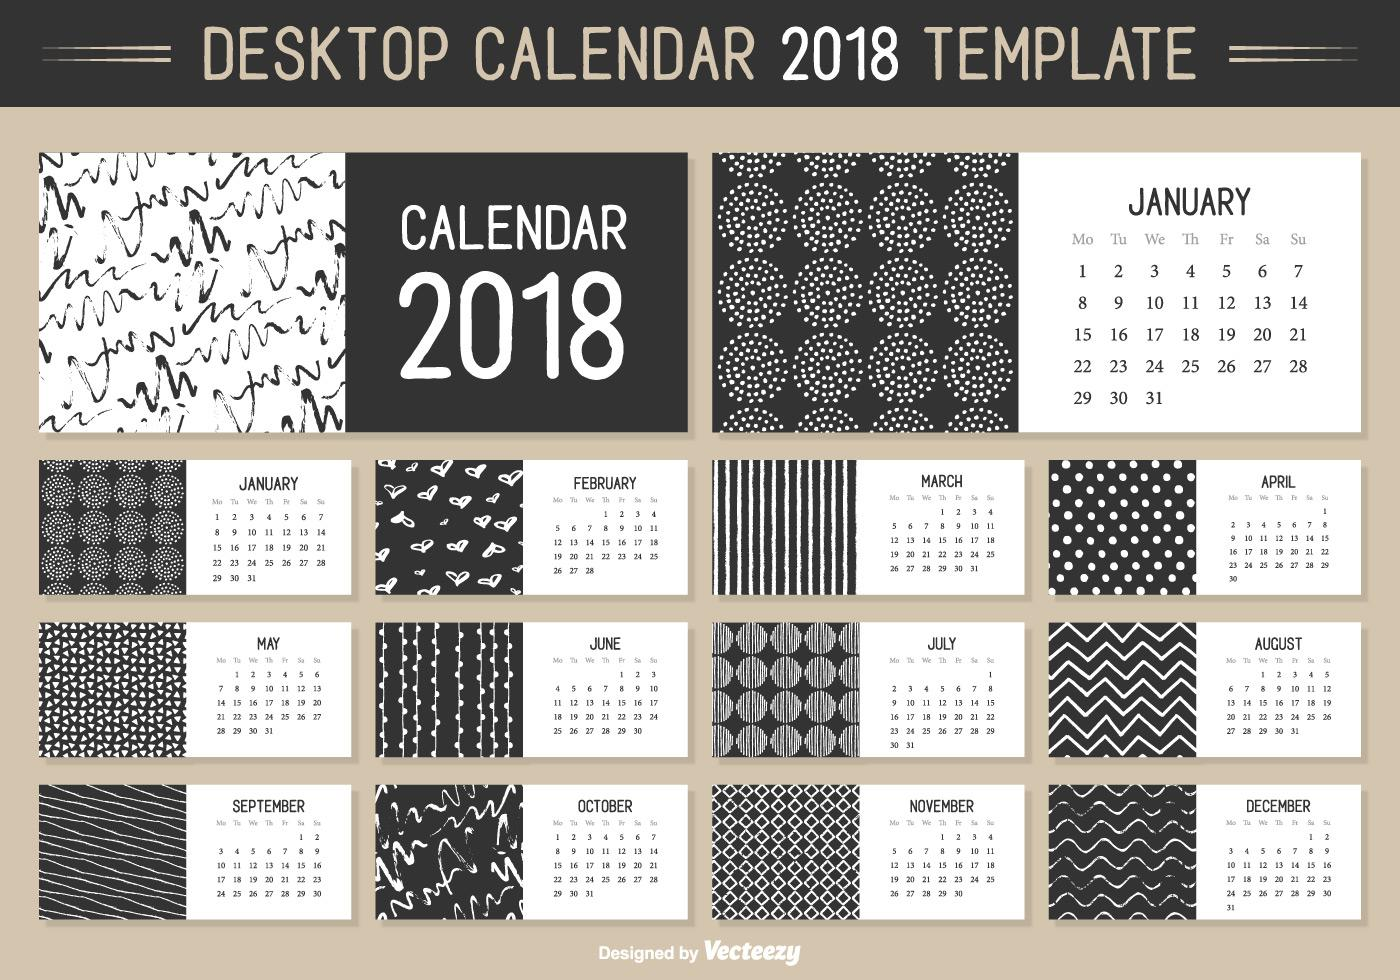 Calendarios en vector 2019 para descargar gratis - Illustrator